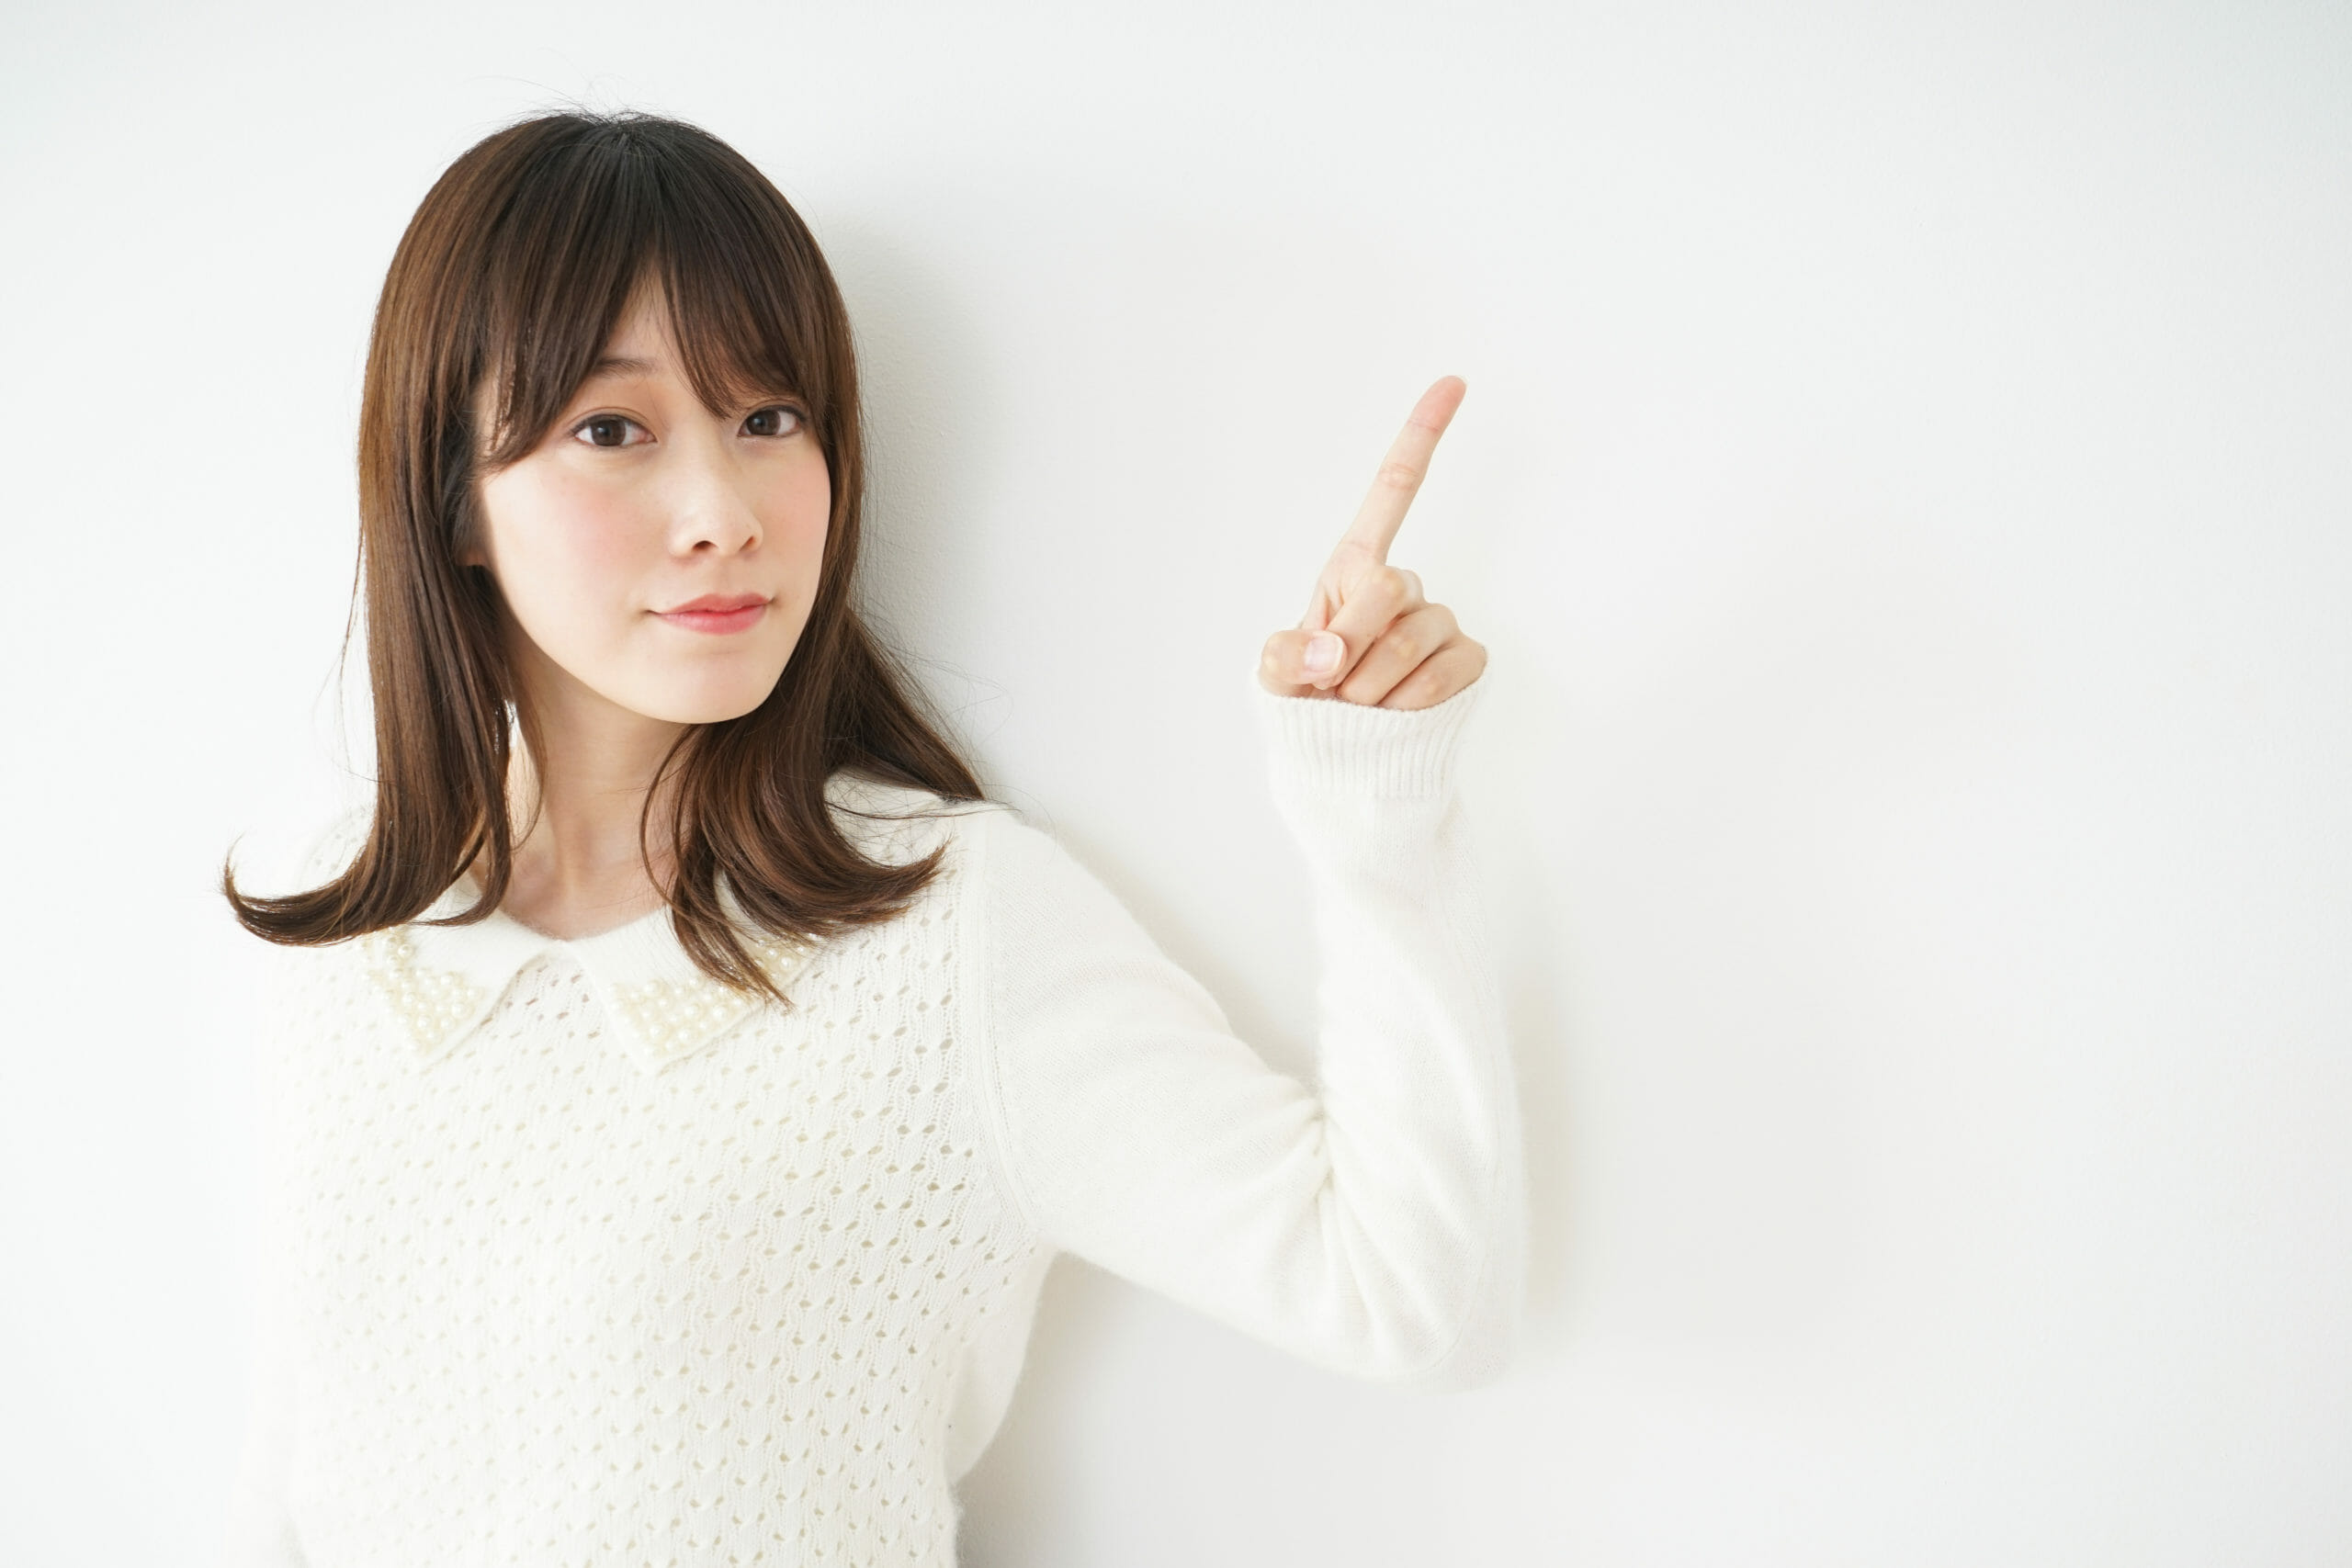 young-woman-pointing-something-smile-615350024